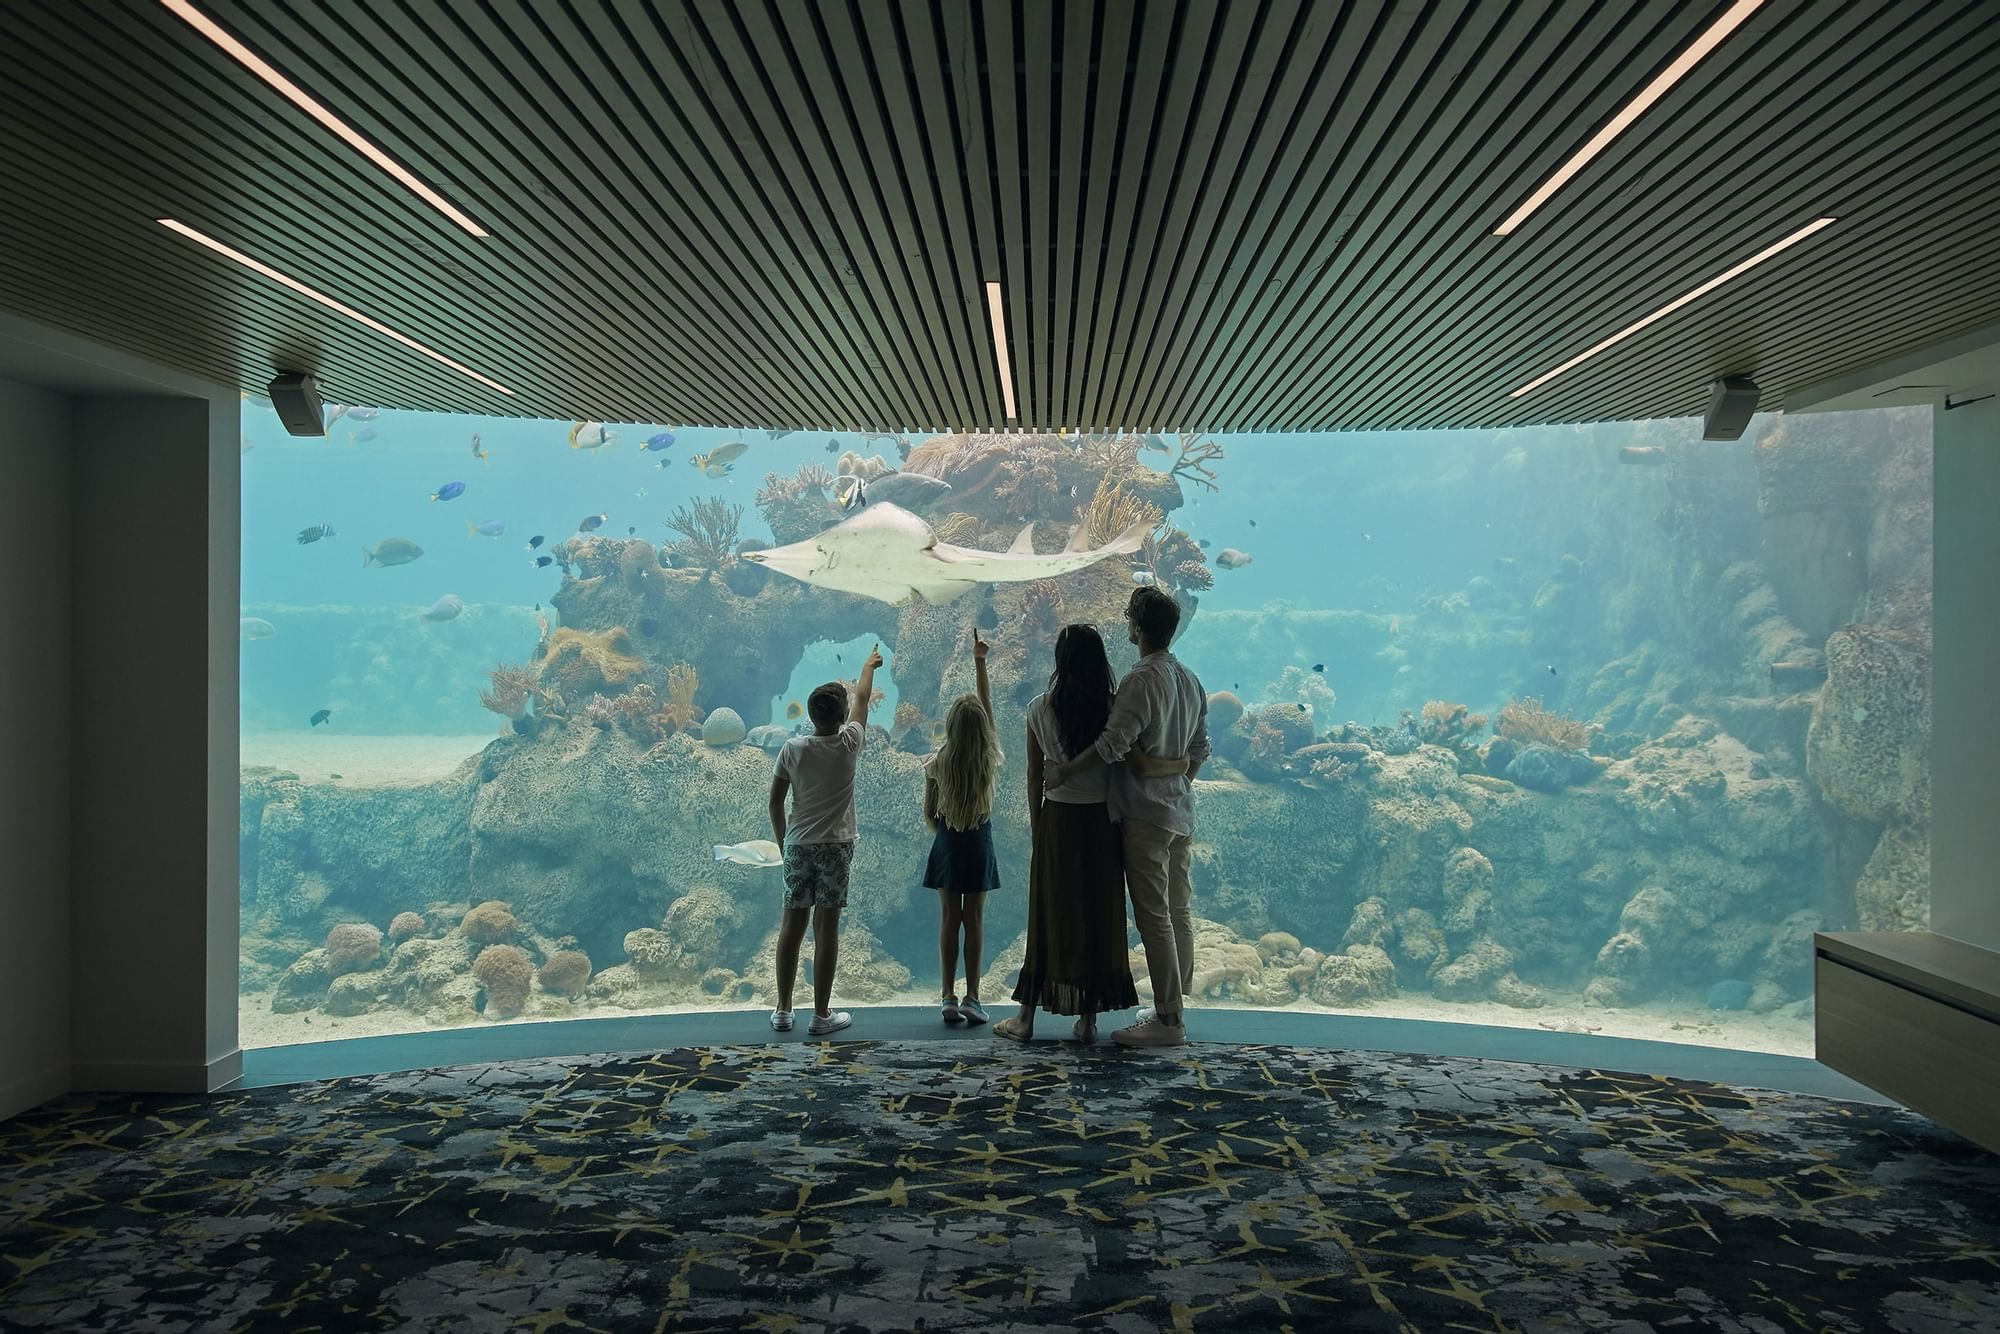 Family in Underwater Observatory at Daydream Island Resort